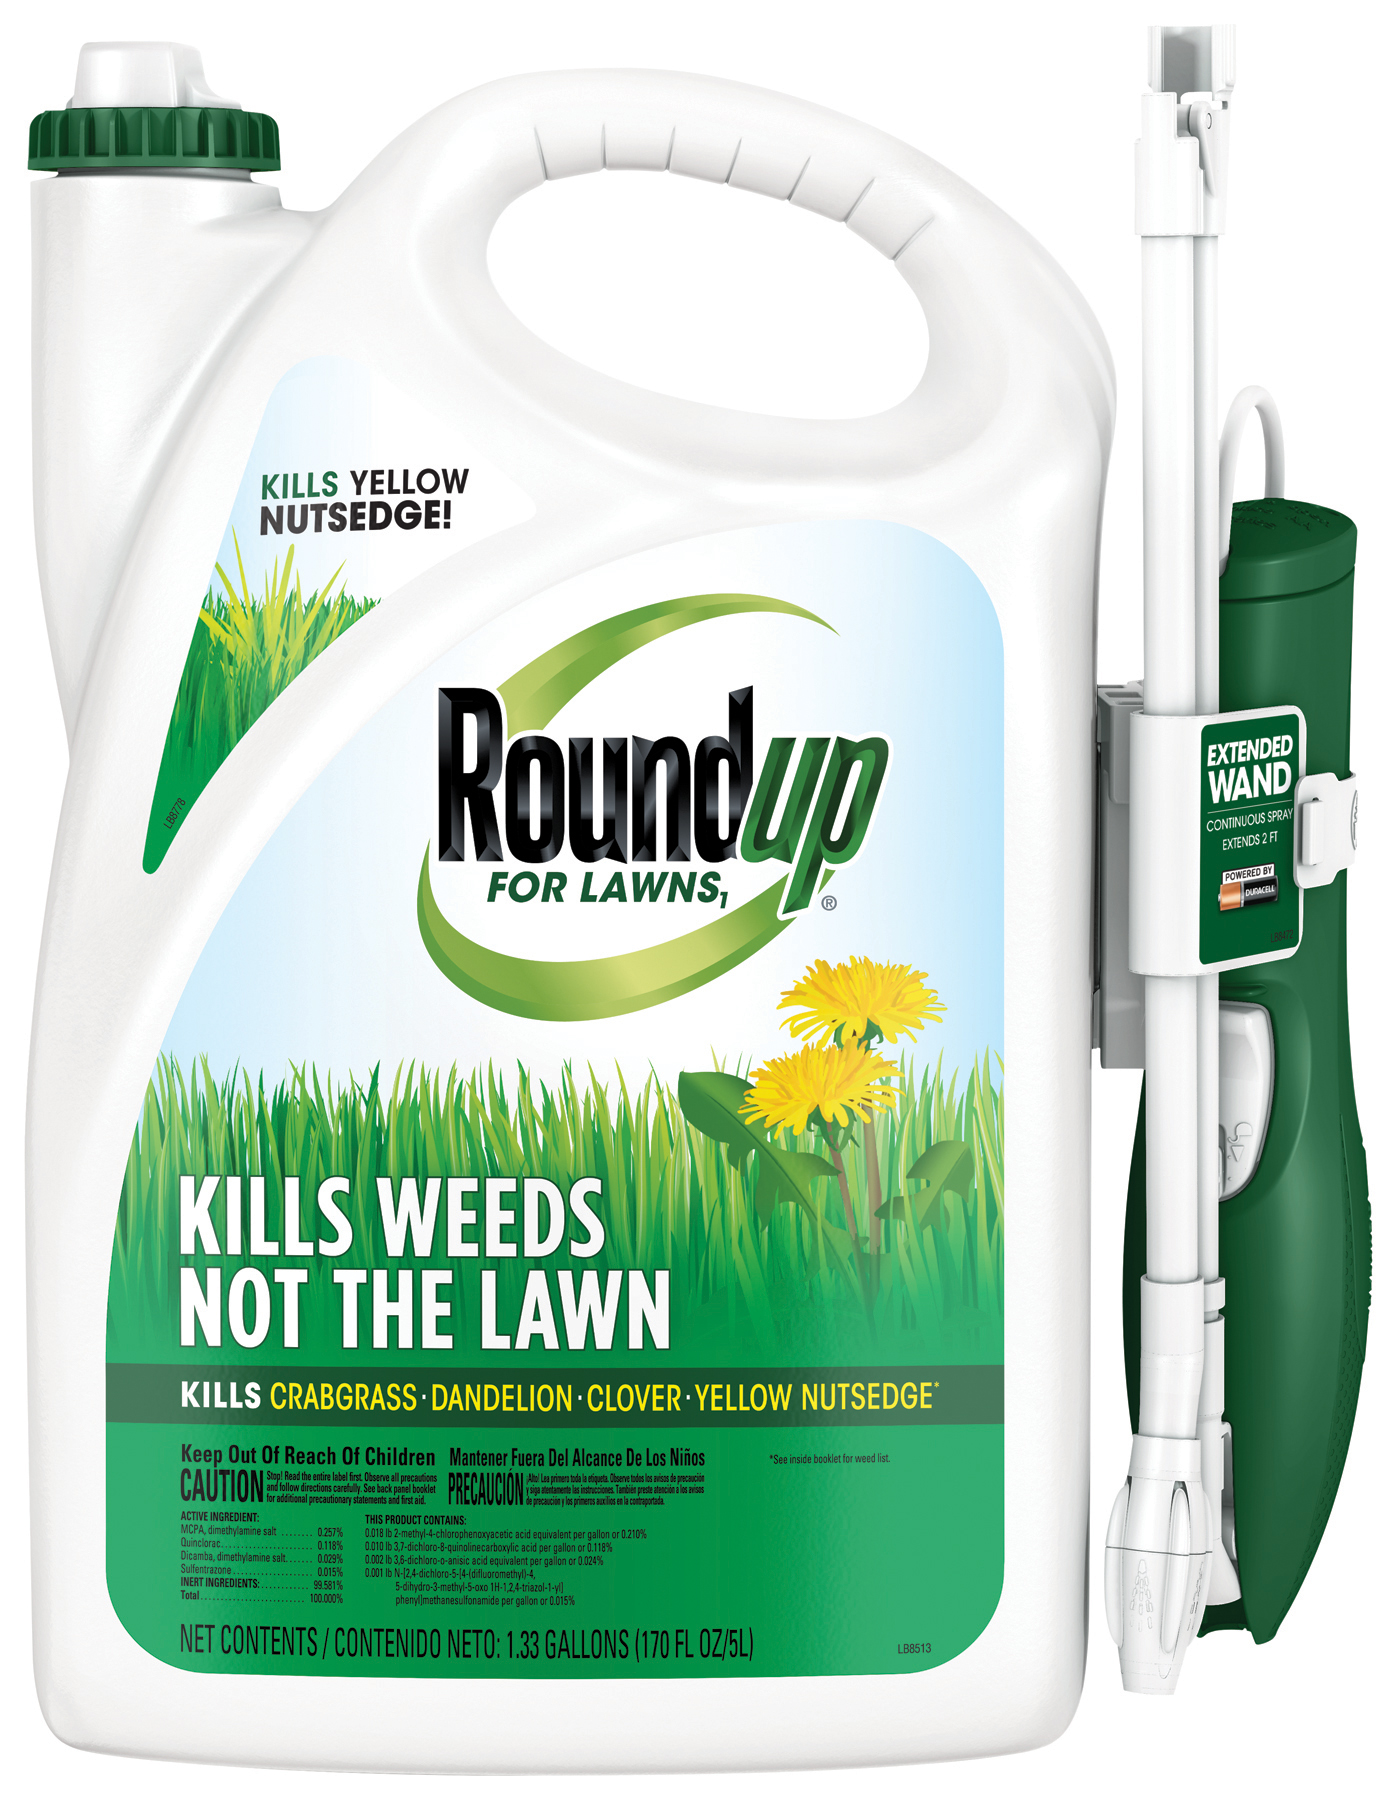 lawn weed control spray roundup for lawns1 with extended wand roundup. Black Bedroom Furniture Sets. Home Design Ideas